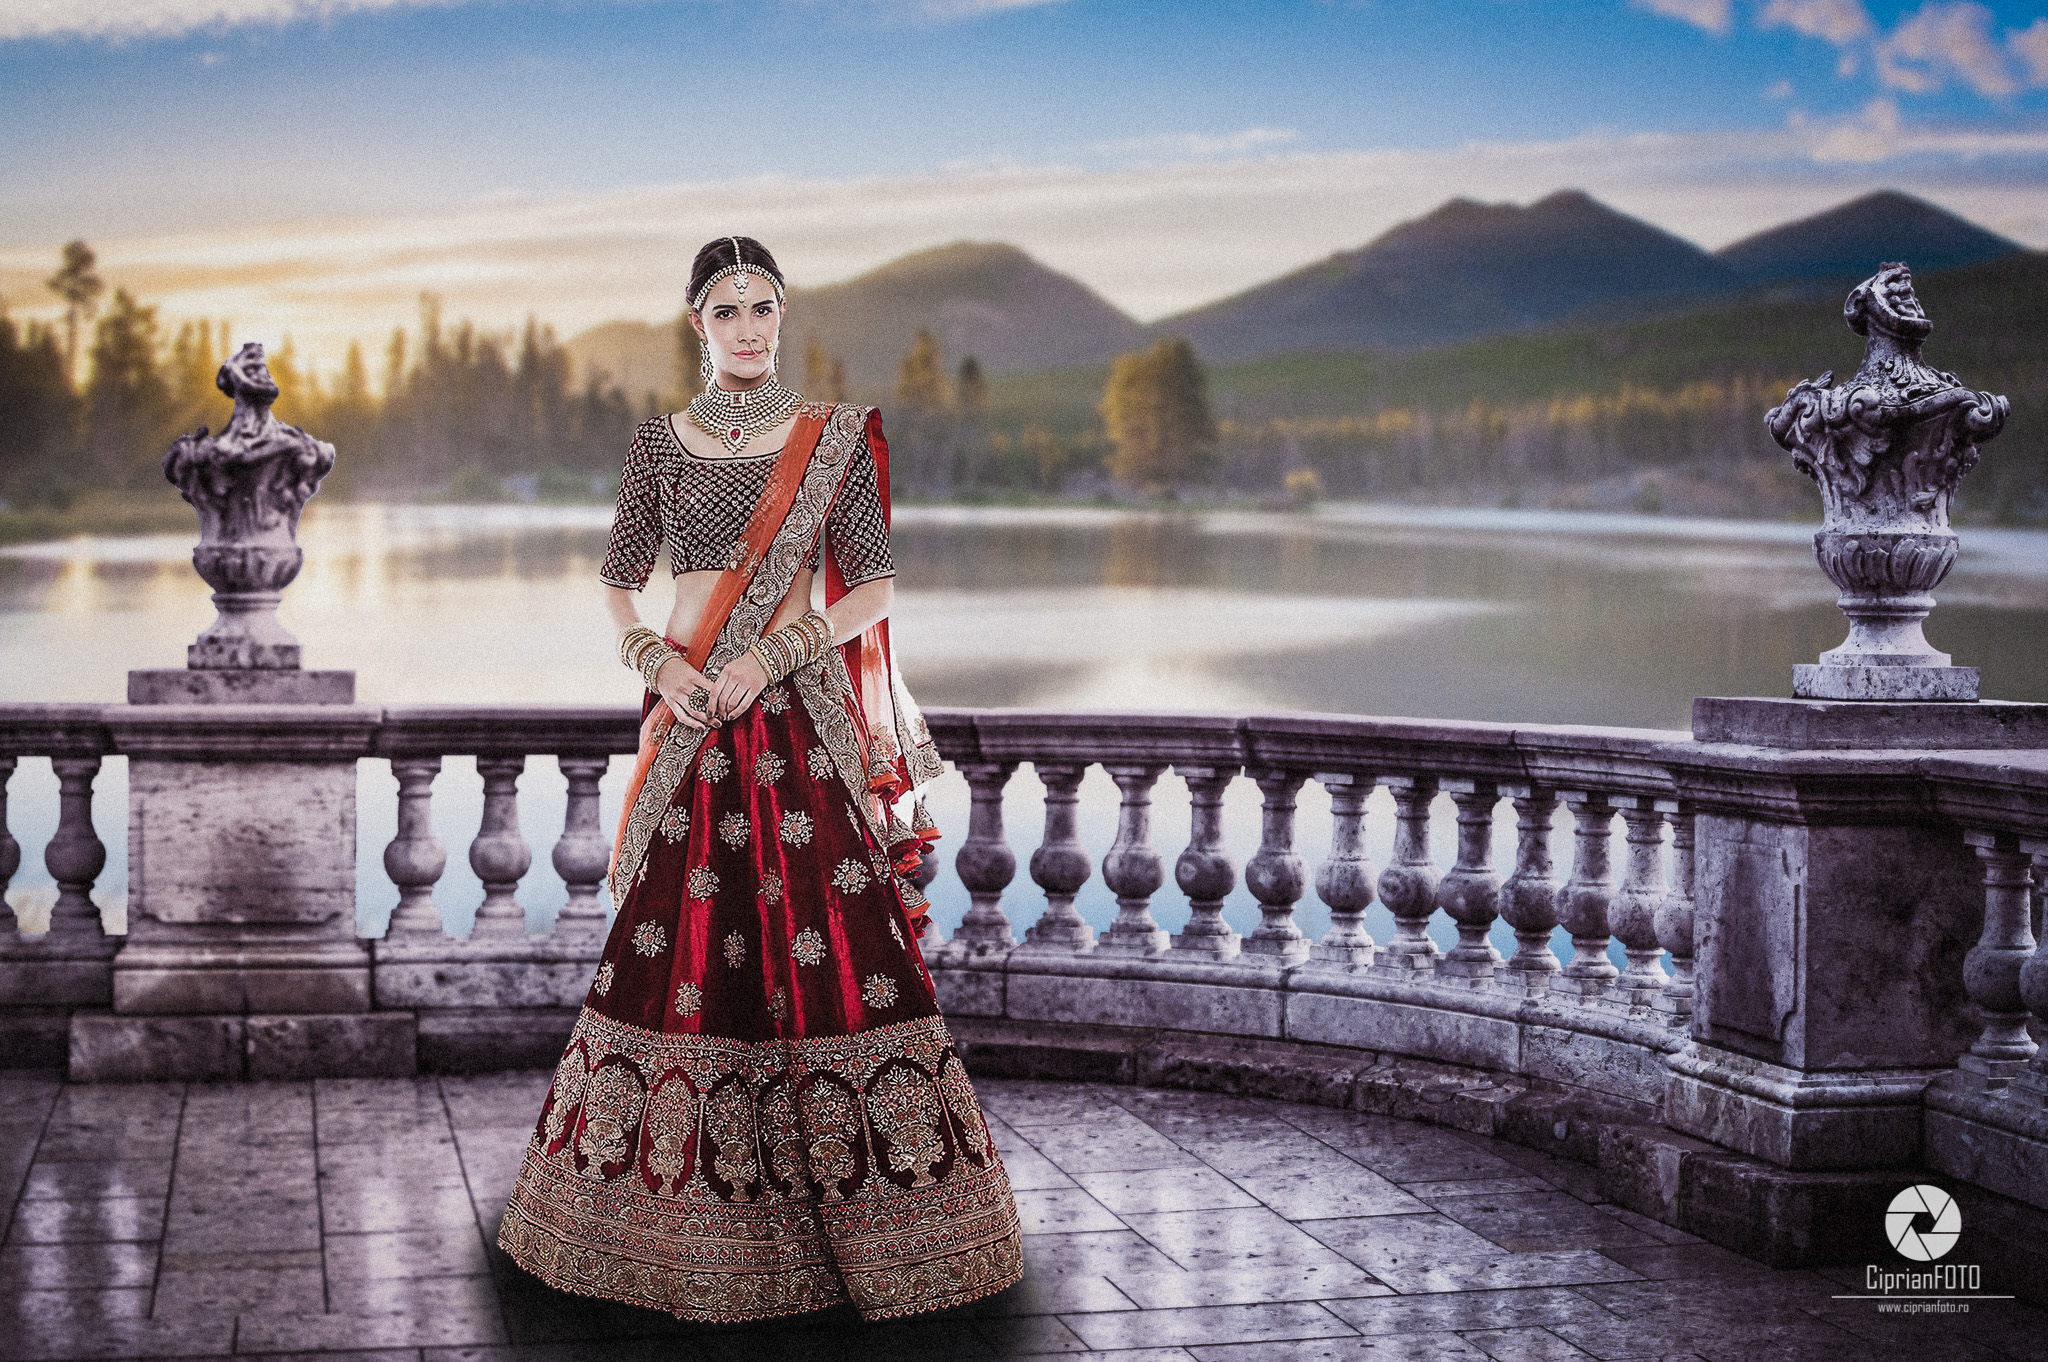 The Indian Bride, Photoshop Manipulation Tutorial, Composition Photography, Photo Manipulation, CiprianFOTO, Ciprian FOTO, fine art, rule of thirds